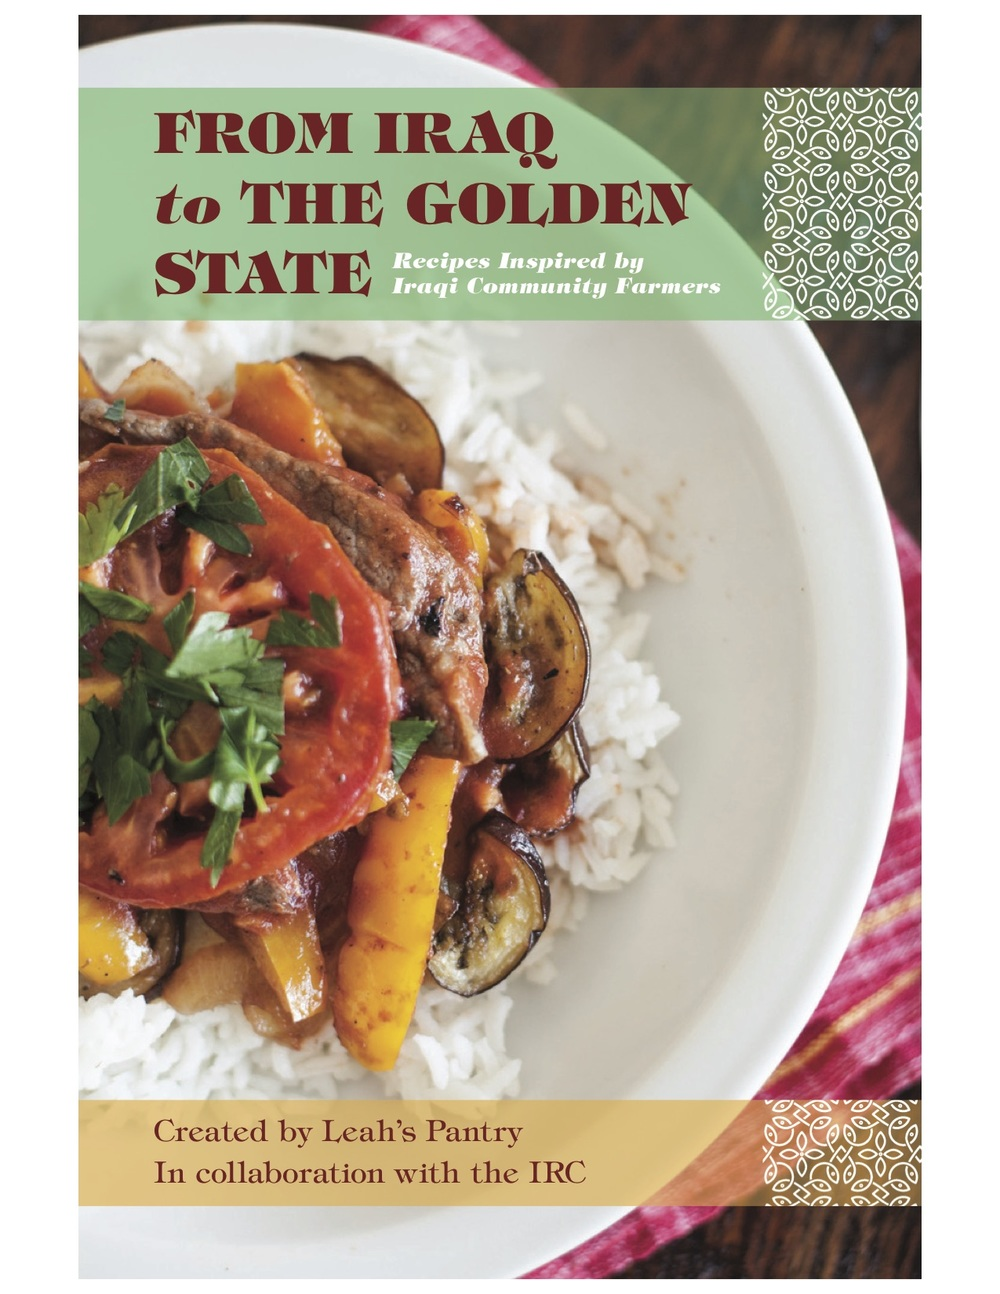 Cookbooks leahs pantry around the world at the farmers market recipes from san diegos african and middle eastern community cooks is compilation of delicious recipes from iraq forumfinder Choice Image